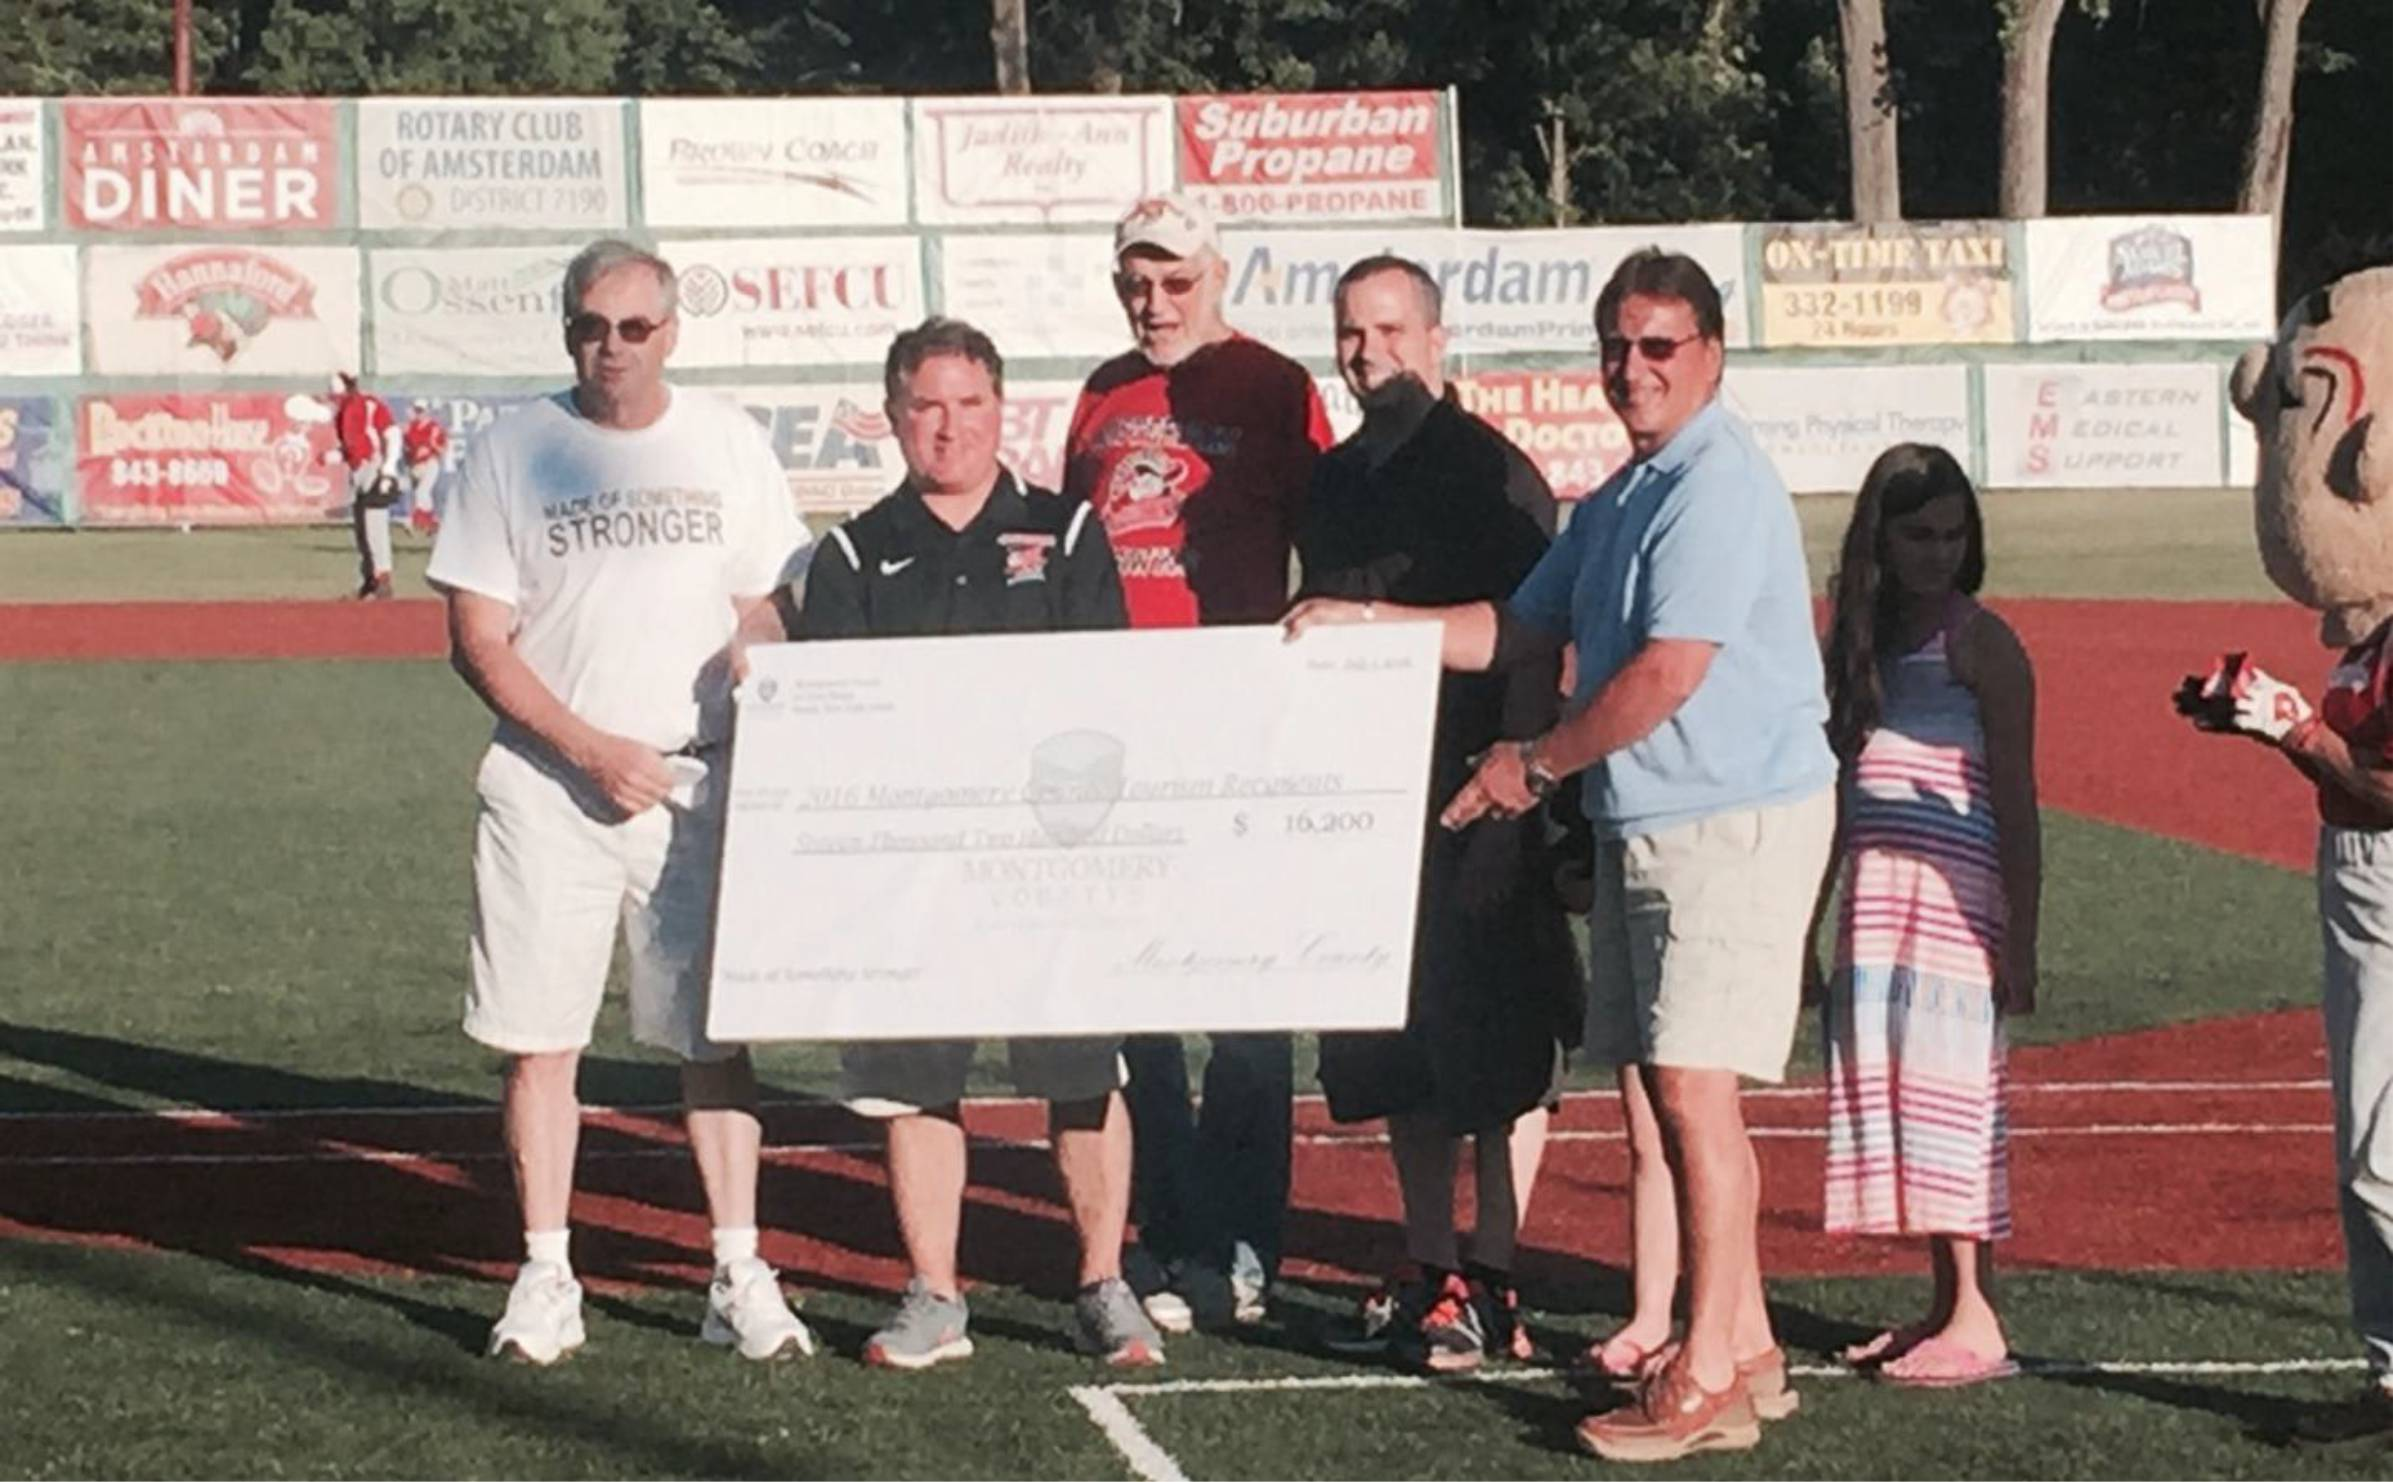 Montgomery Count Legislators gift check for the 2016 Local Tourism Grant Awards to organizations at the Amsterdam Mohawks game on